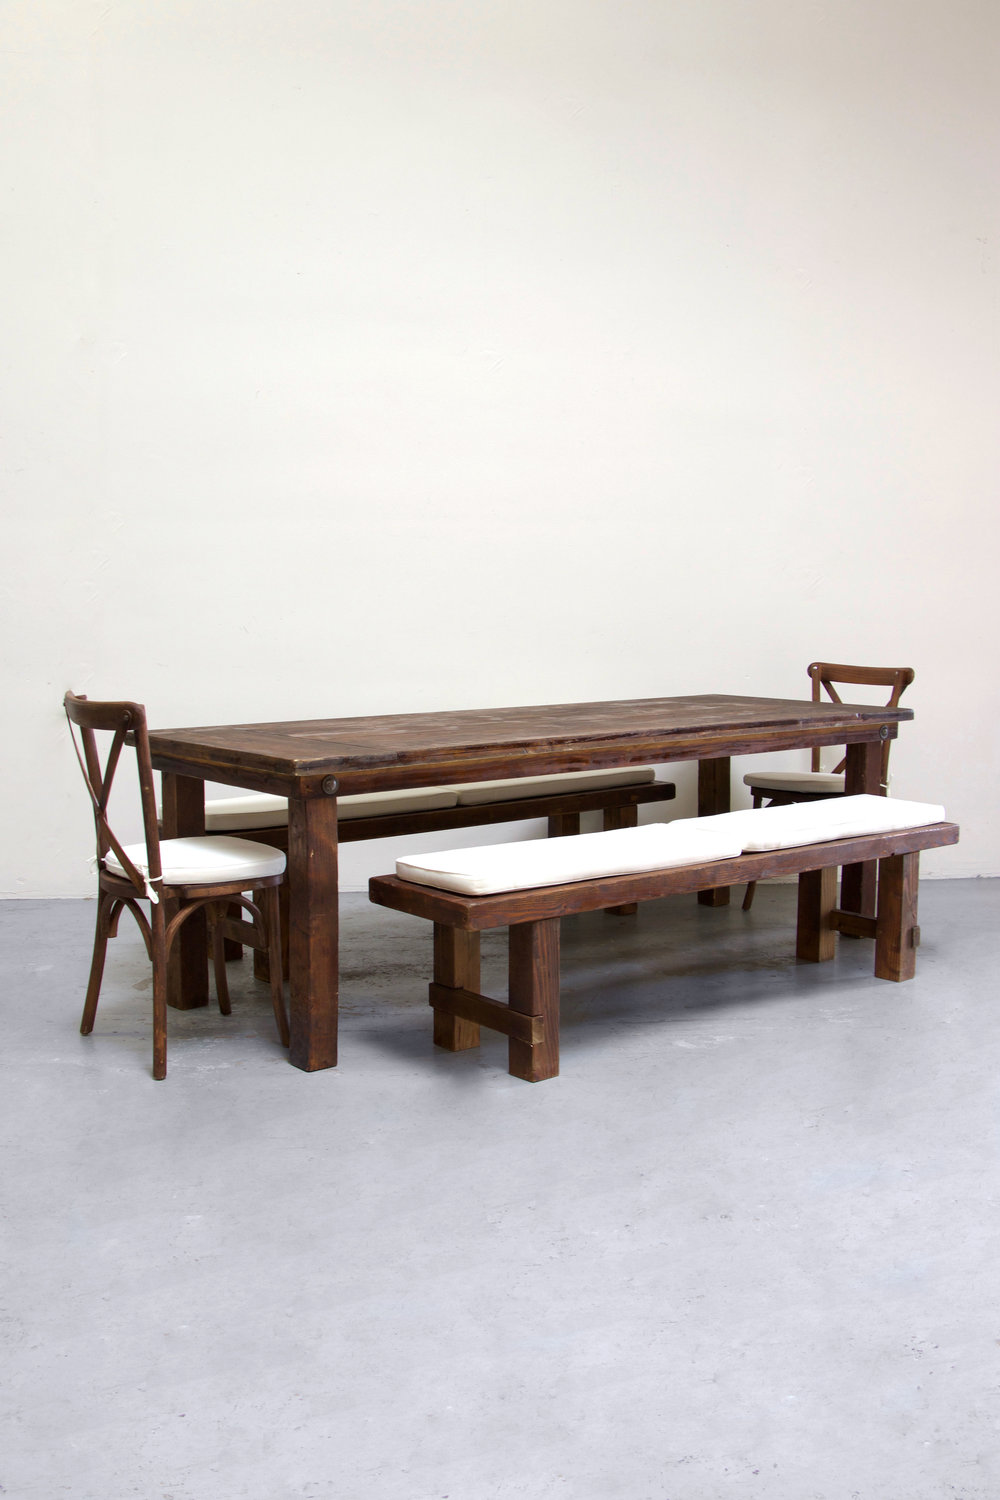 $160 1 Mahogany Farm Table w/ 2 Long Benches & 2 Cross-Back Chairs